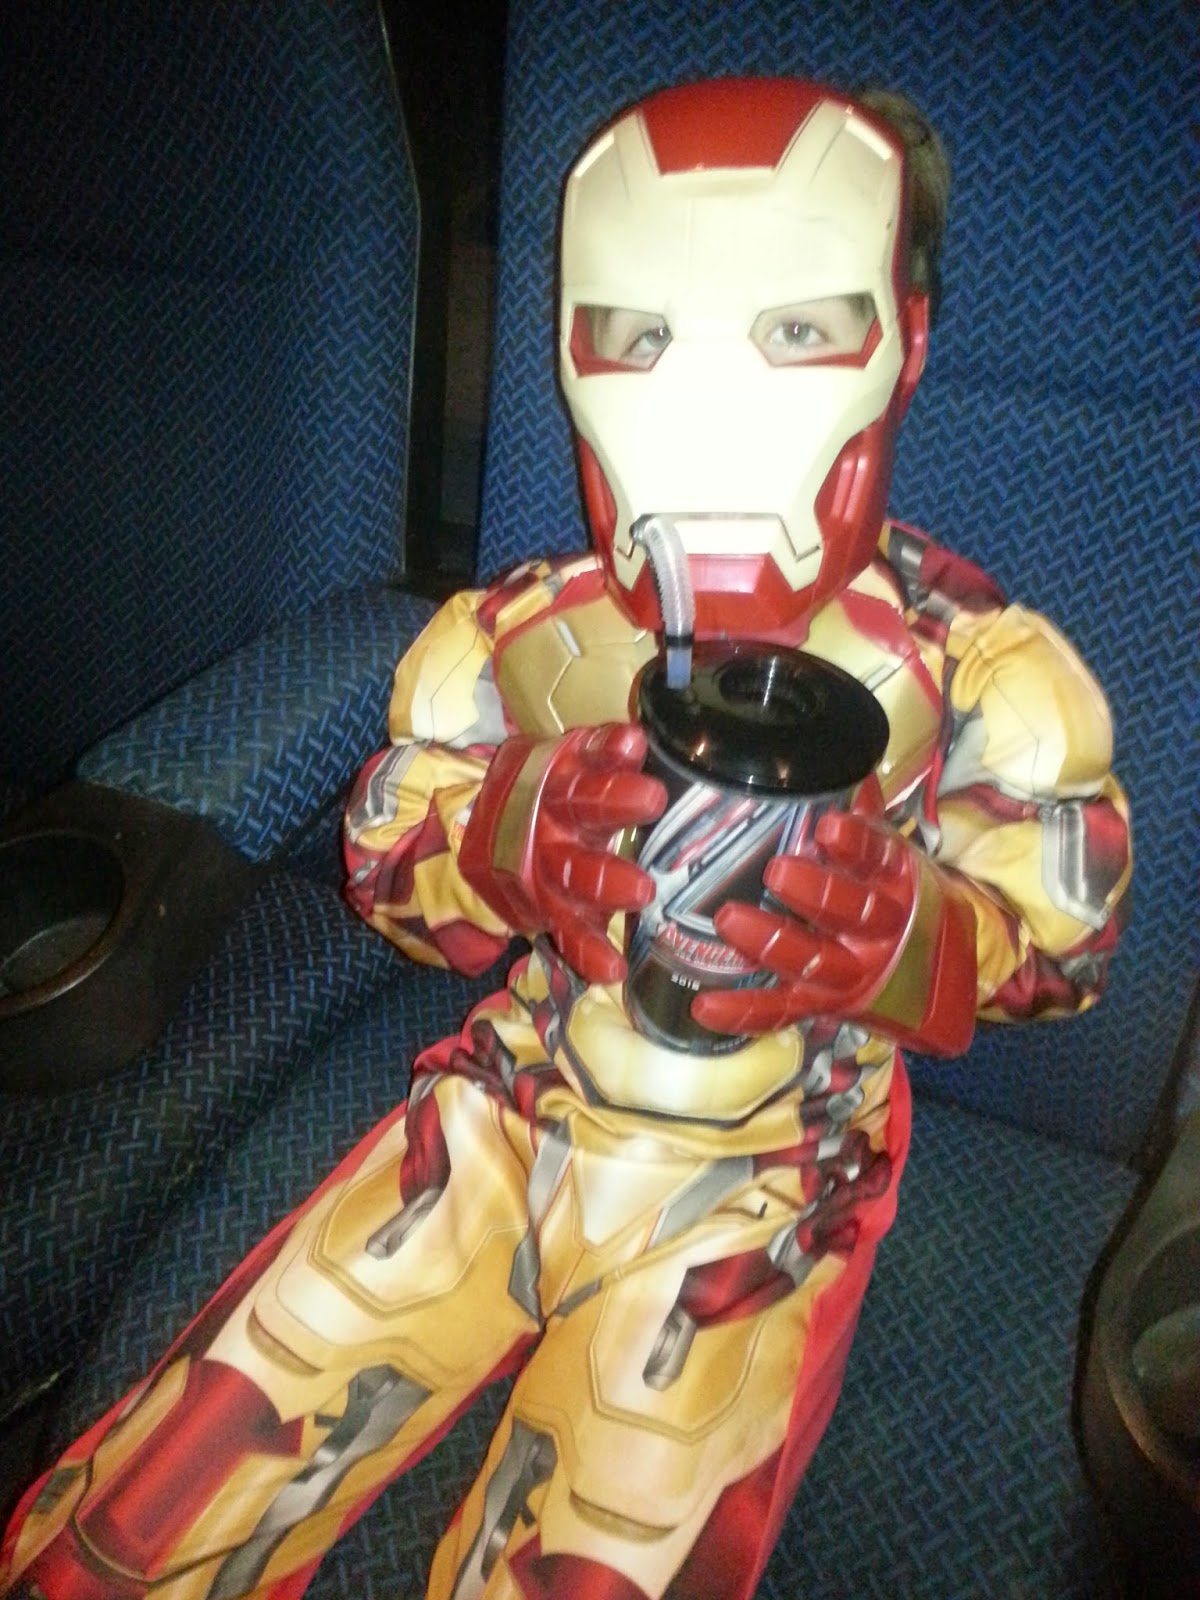 Boy Dressed as Iron Man